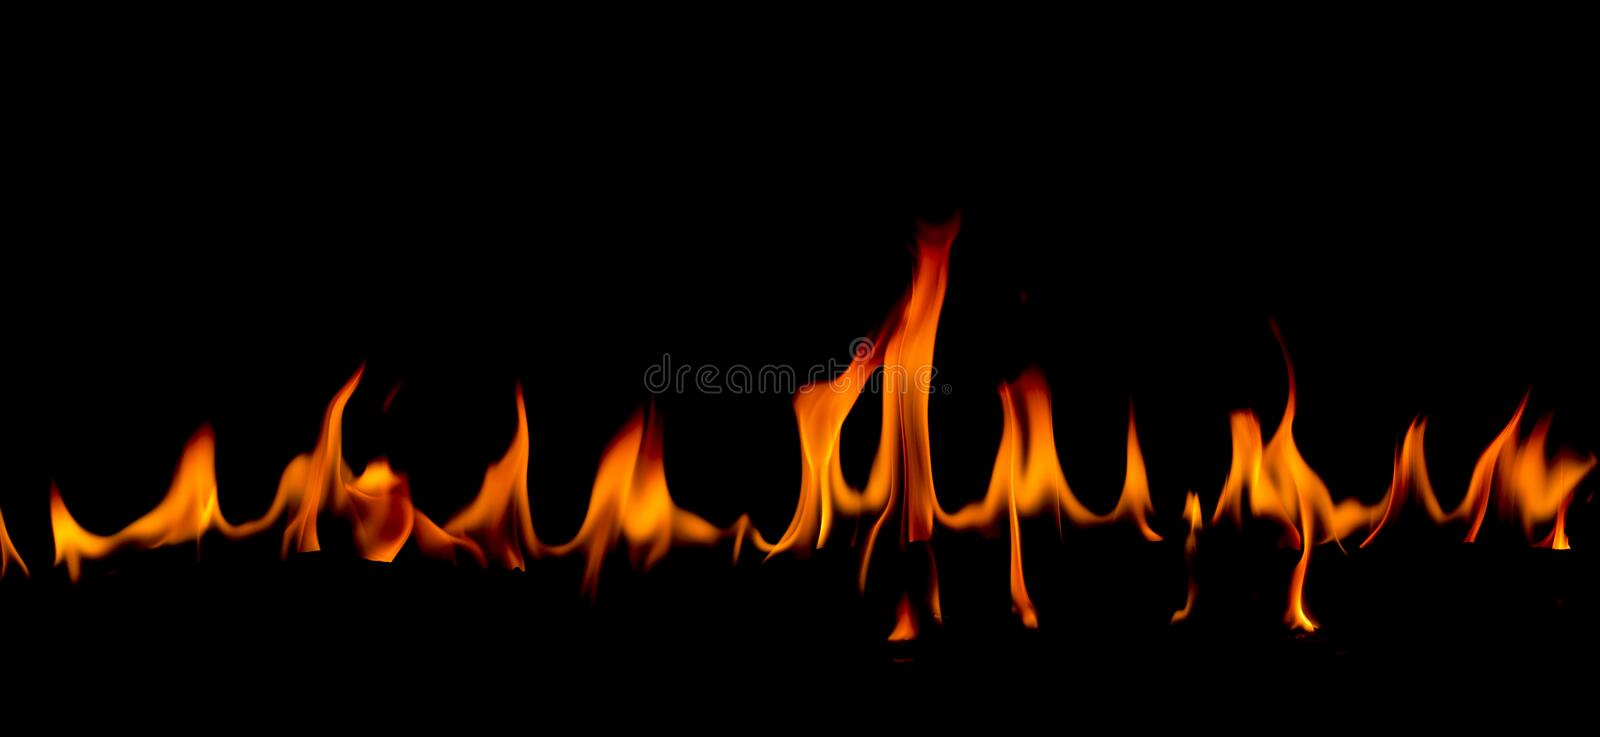 Fire flames on Abstract art black background, Burning red hot sparks rise. Fiery orange glowing flying particles stock image